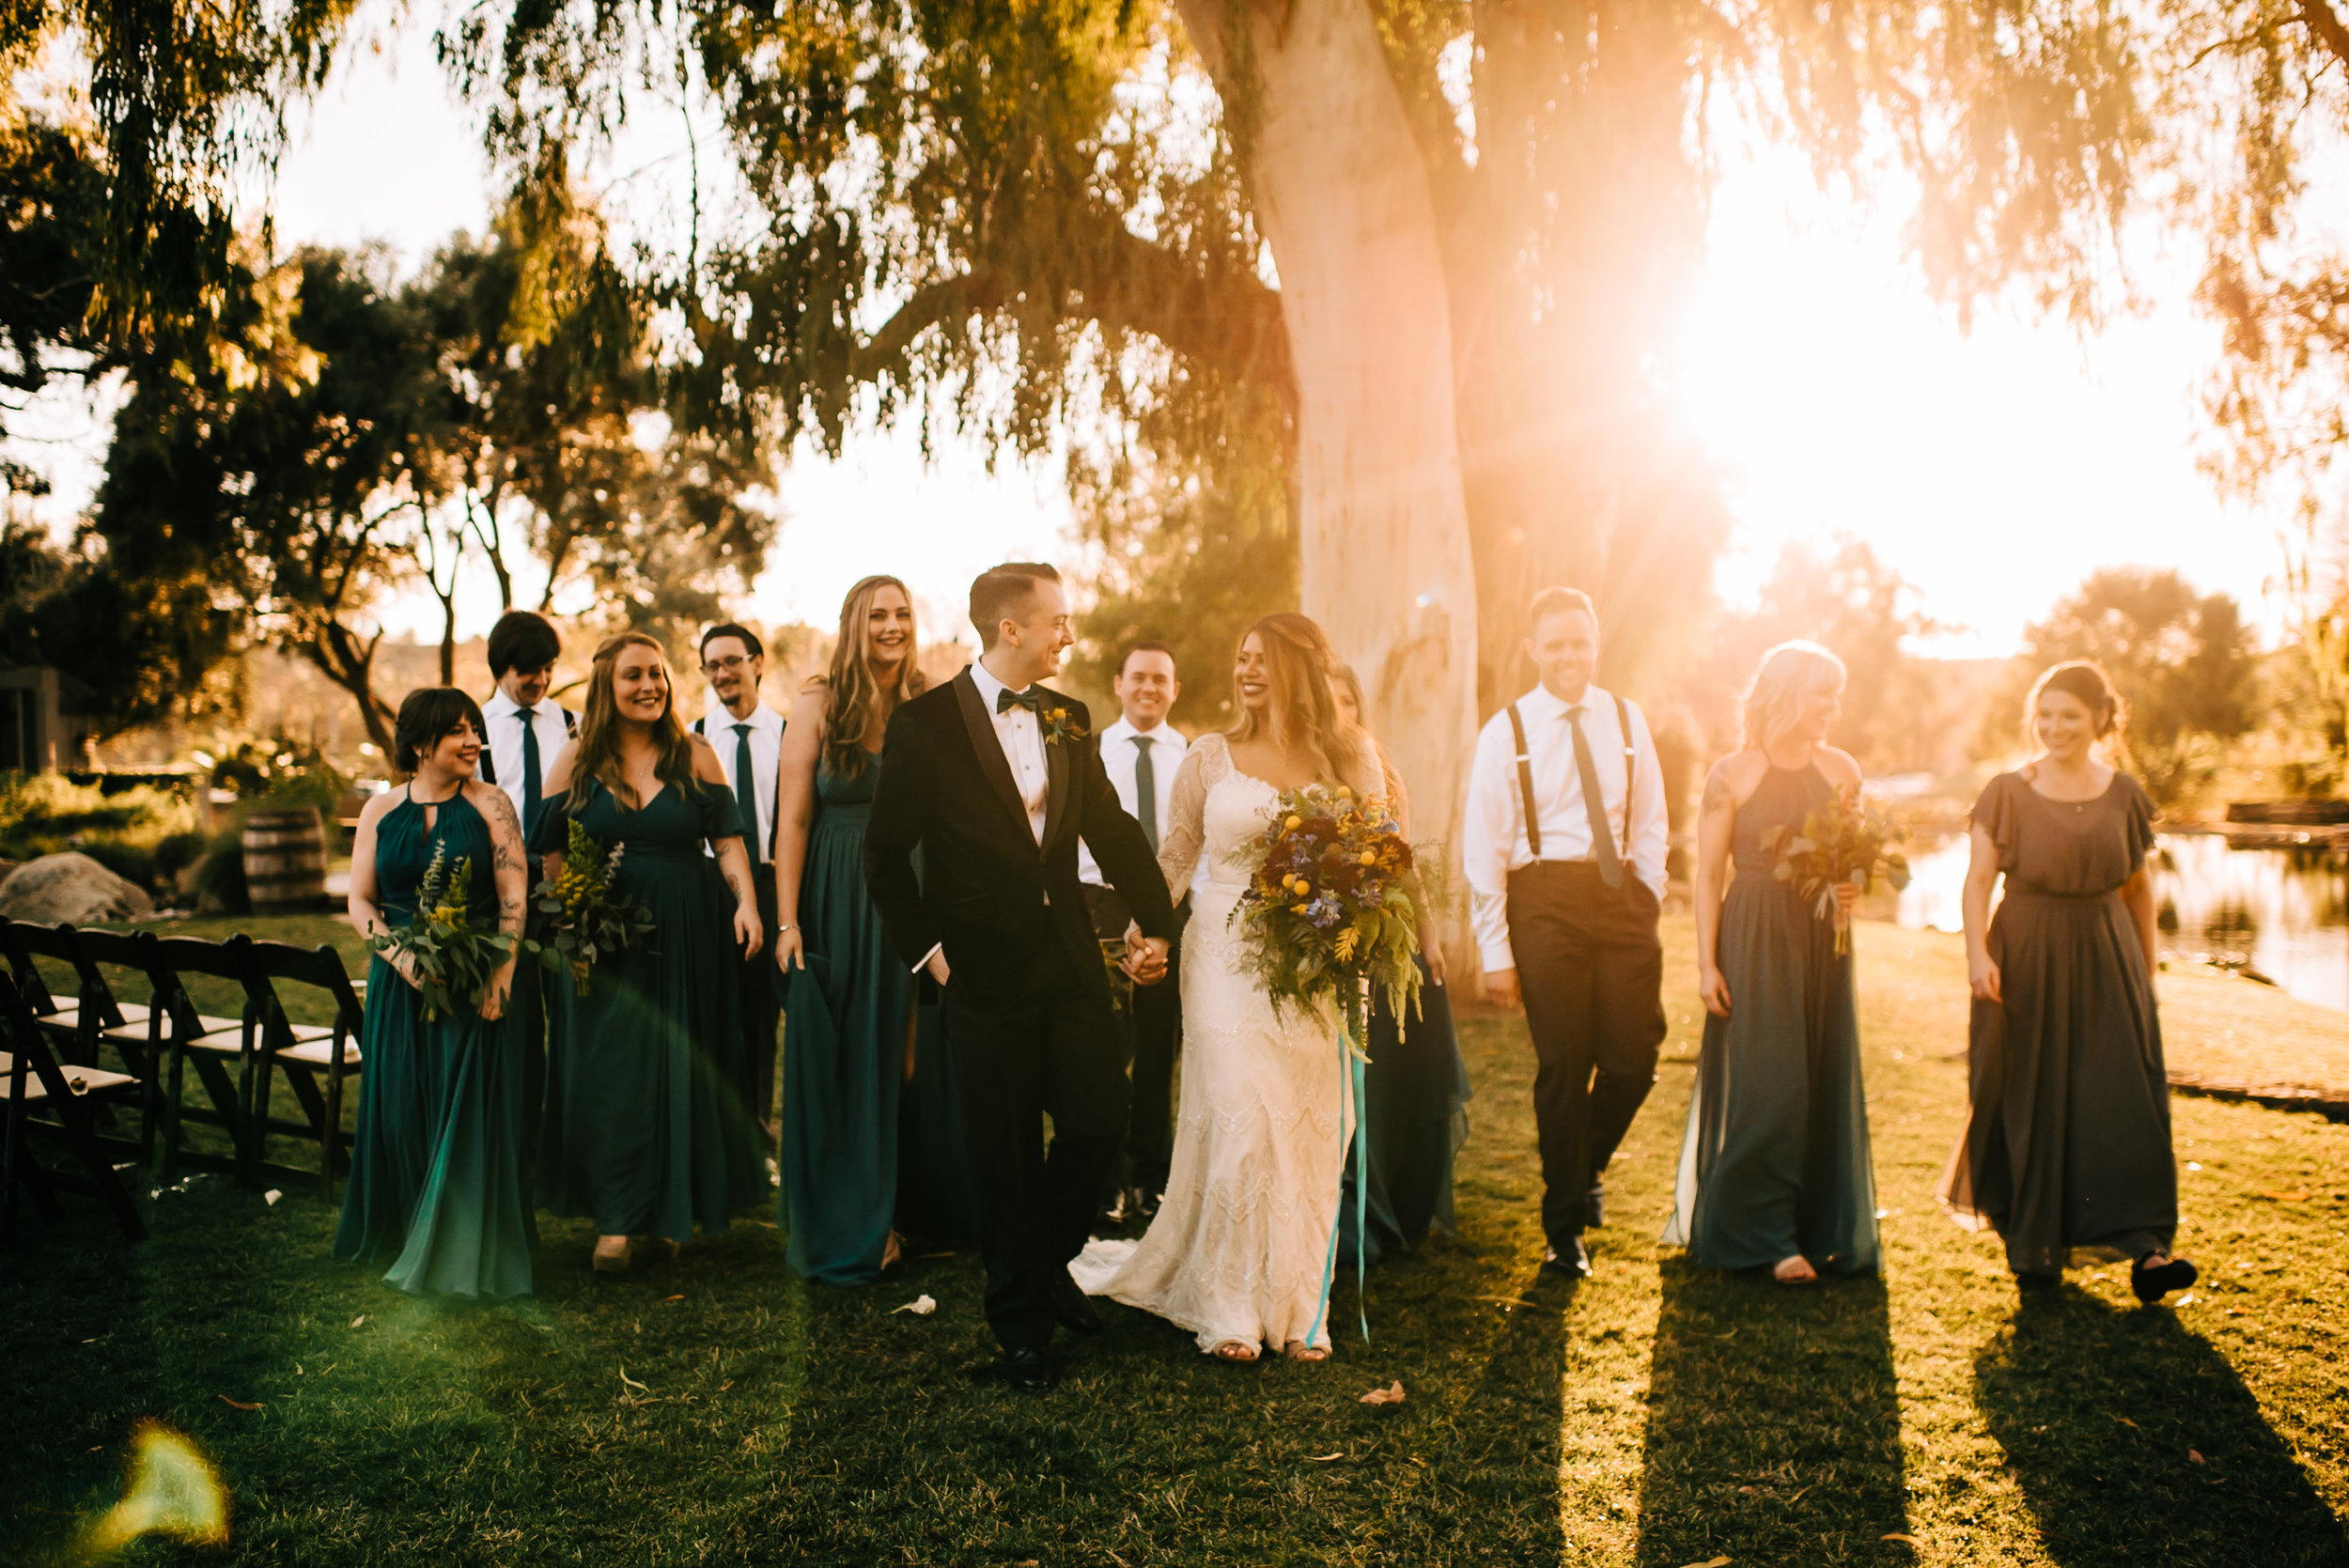 bay area nontraditional wedding photographer southern california boho wedding love light magic san francisco oakland northern california-727.jpg